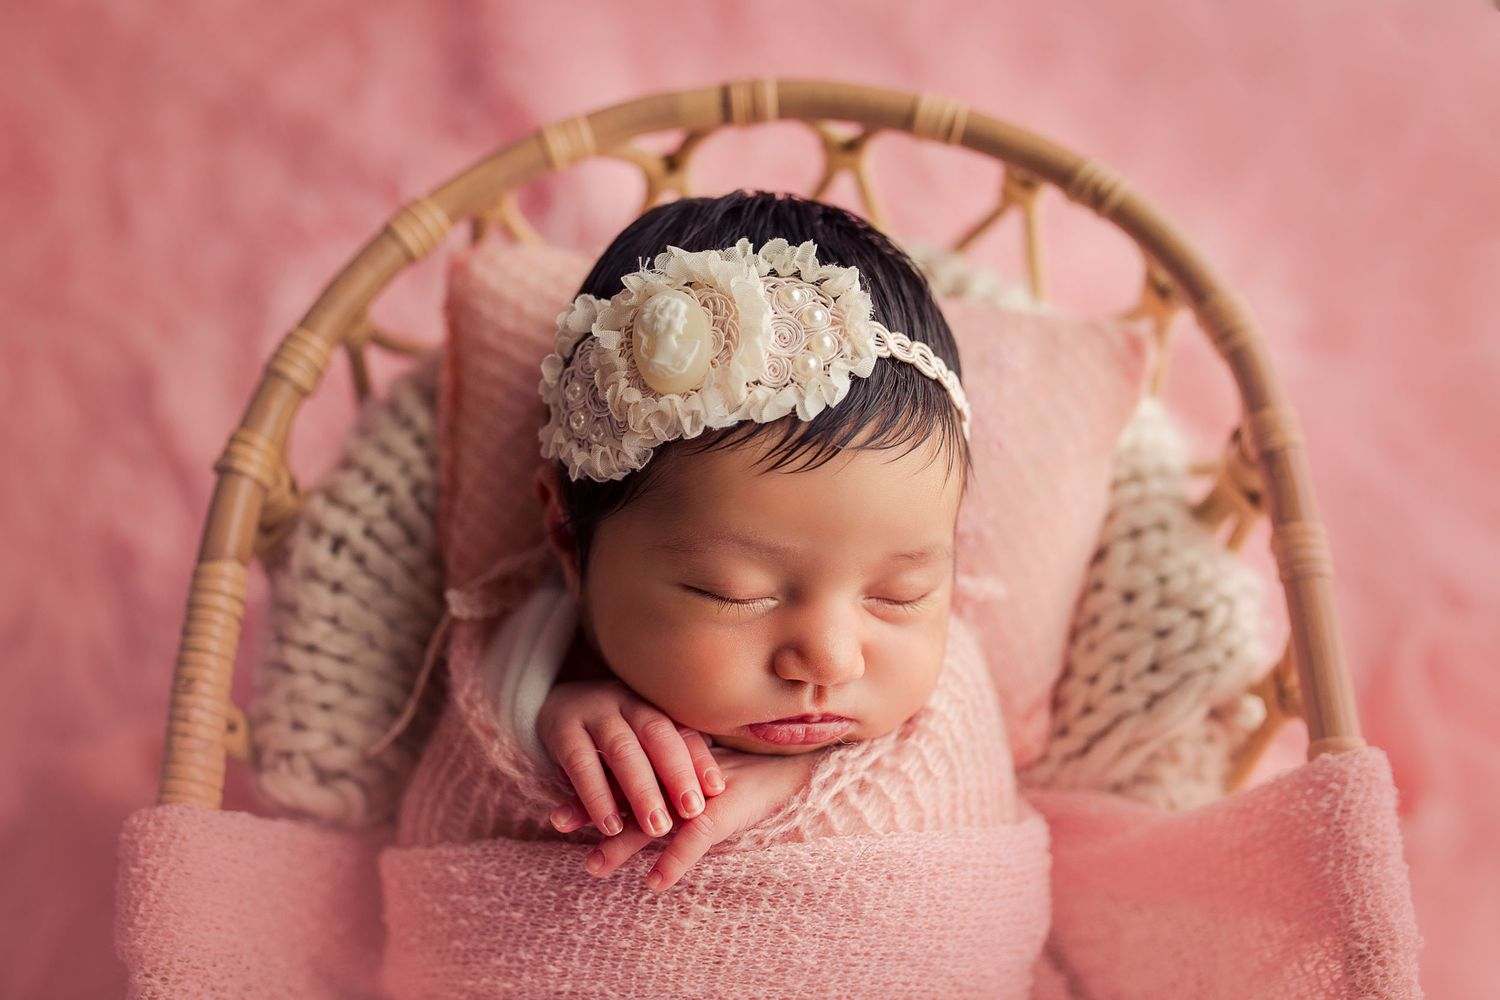 baby close up sleeping in basket pink clothing